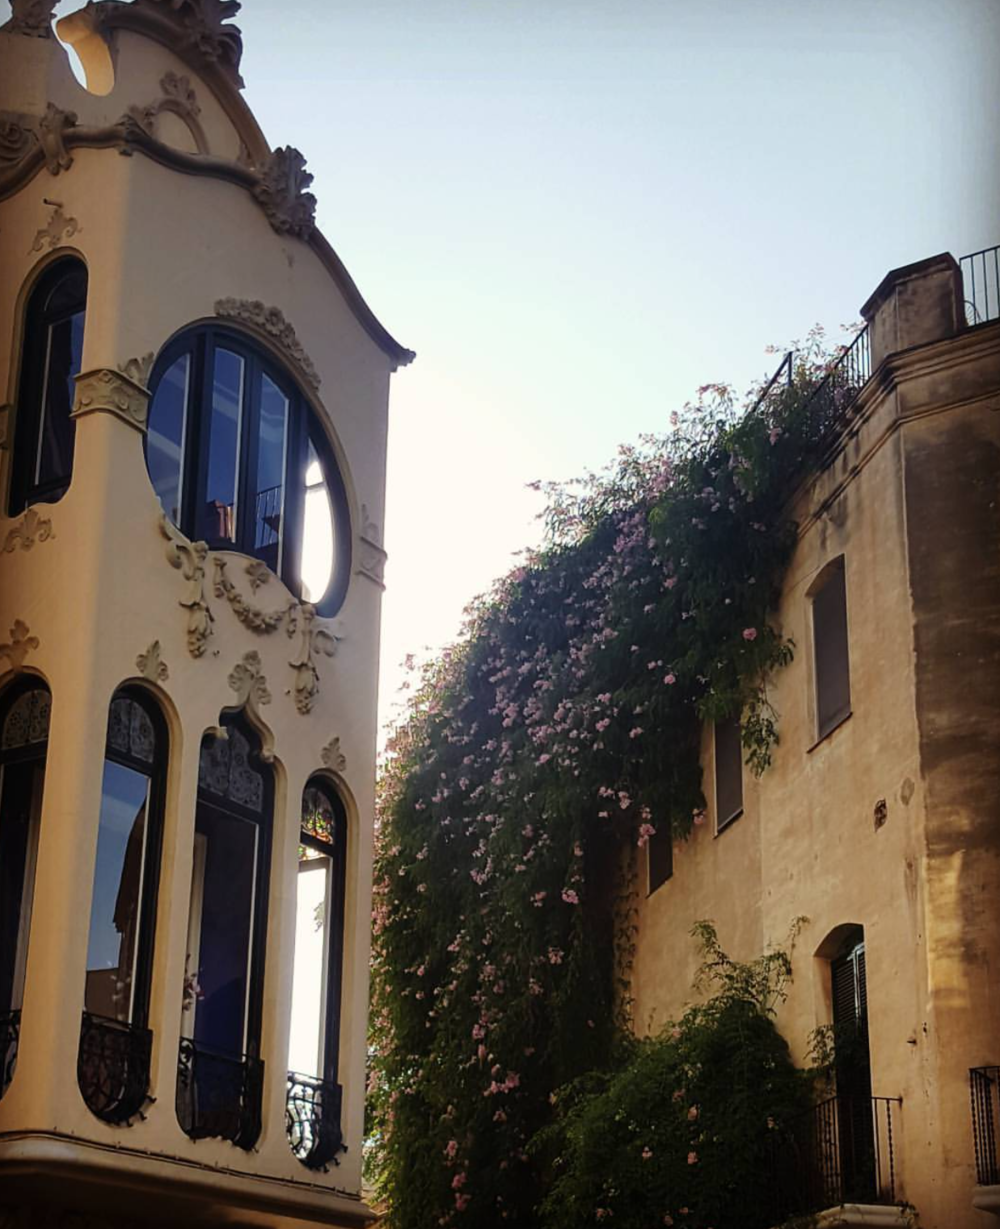 """I stopped in my steps as I saw the sun shine between some old """"Gaudi-esque"""" houses, kissing the long flower-clad branches of a majestic 4-story tall tree as I bathed in the peace and quiet of a pedestrian road.I had fallen blindly in love."""